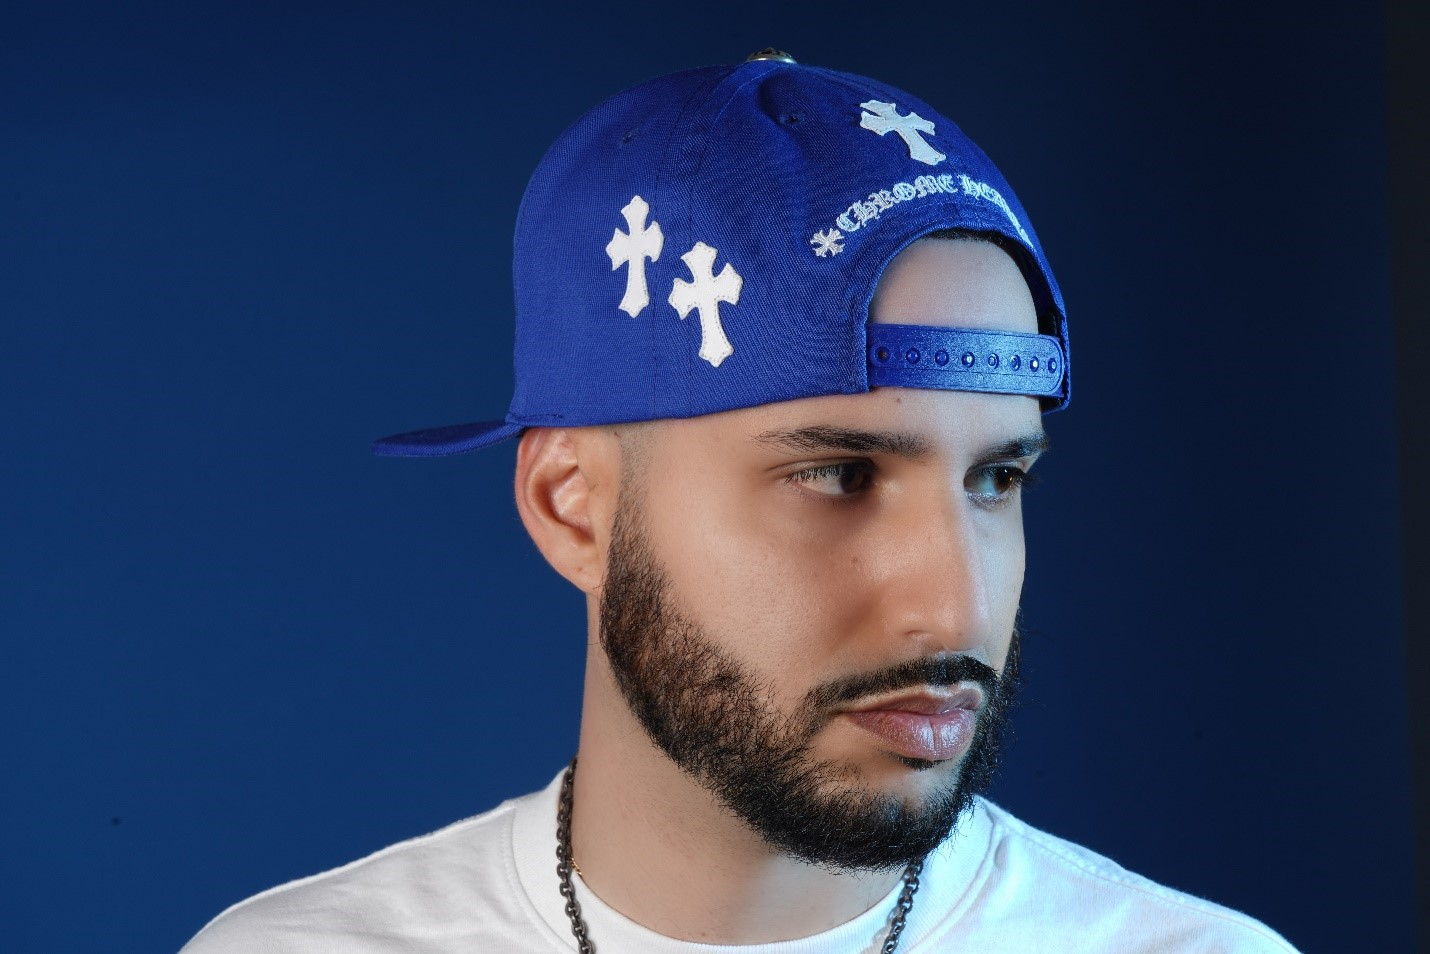 """Maor Mo's Upcoming Album """"Same God"""" Sets Him Apart From Other R&B Artists"""